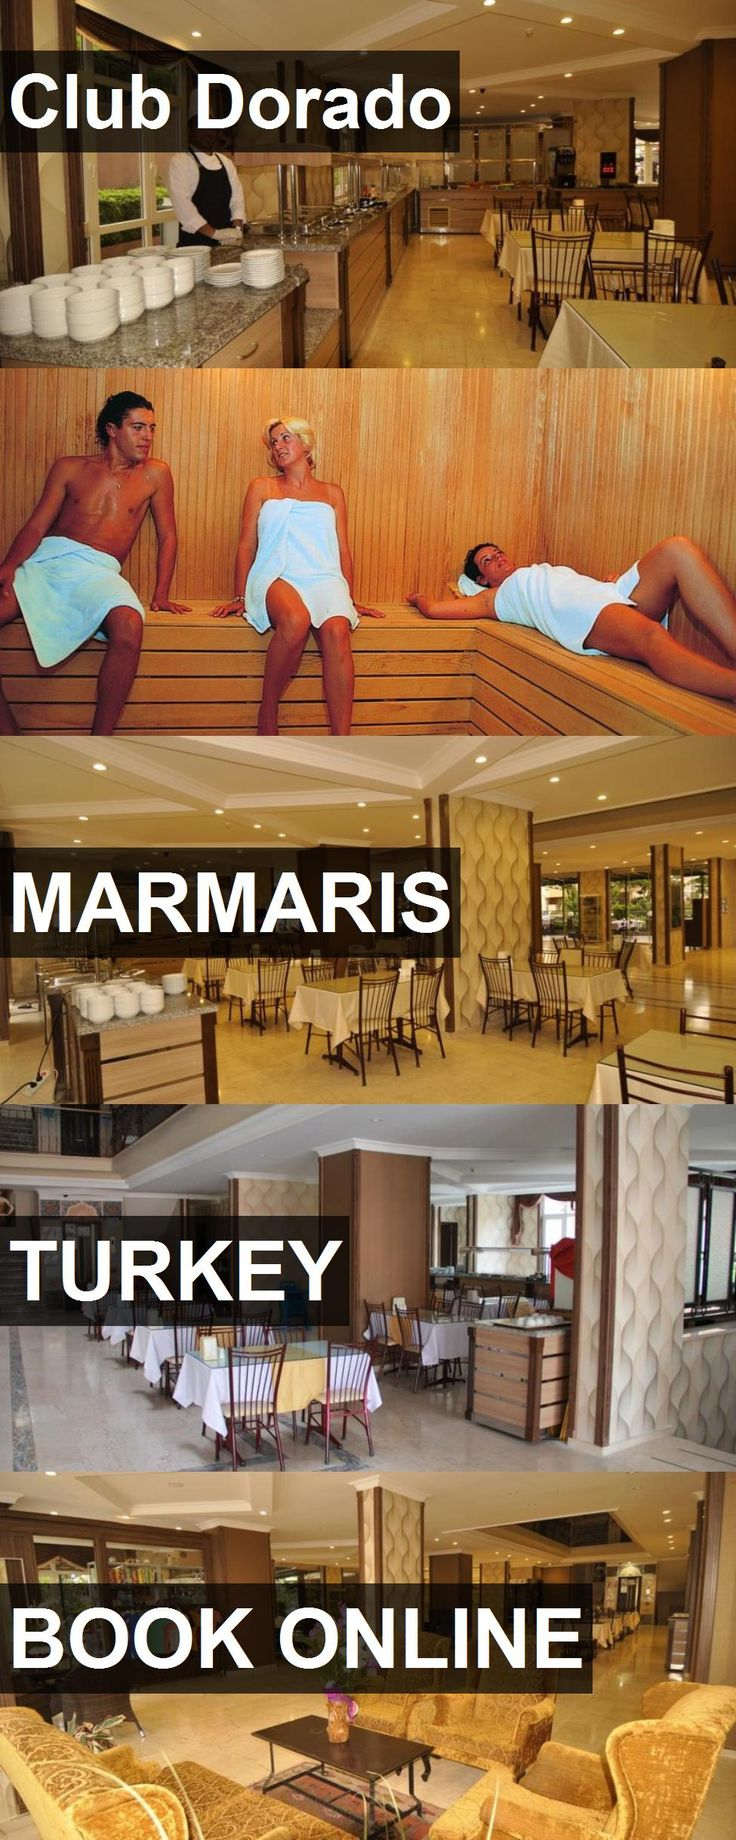 Hotel Club Dorado in Marmaris, Turkey. For more information, photos, reviews and best prices please follow the link. #Turkey #Marmaris #hotel #travel #vacation